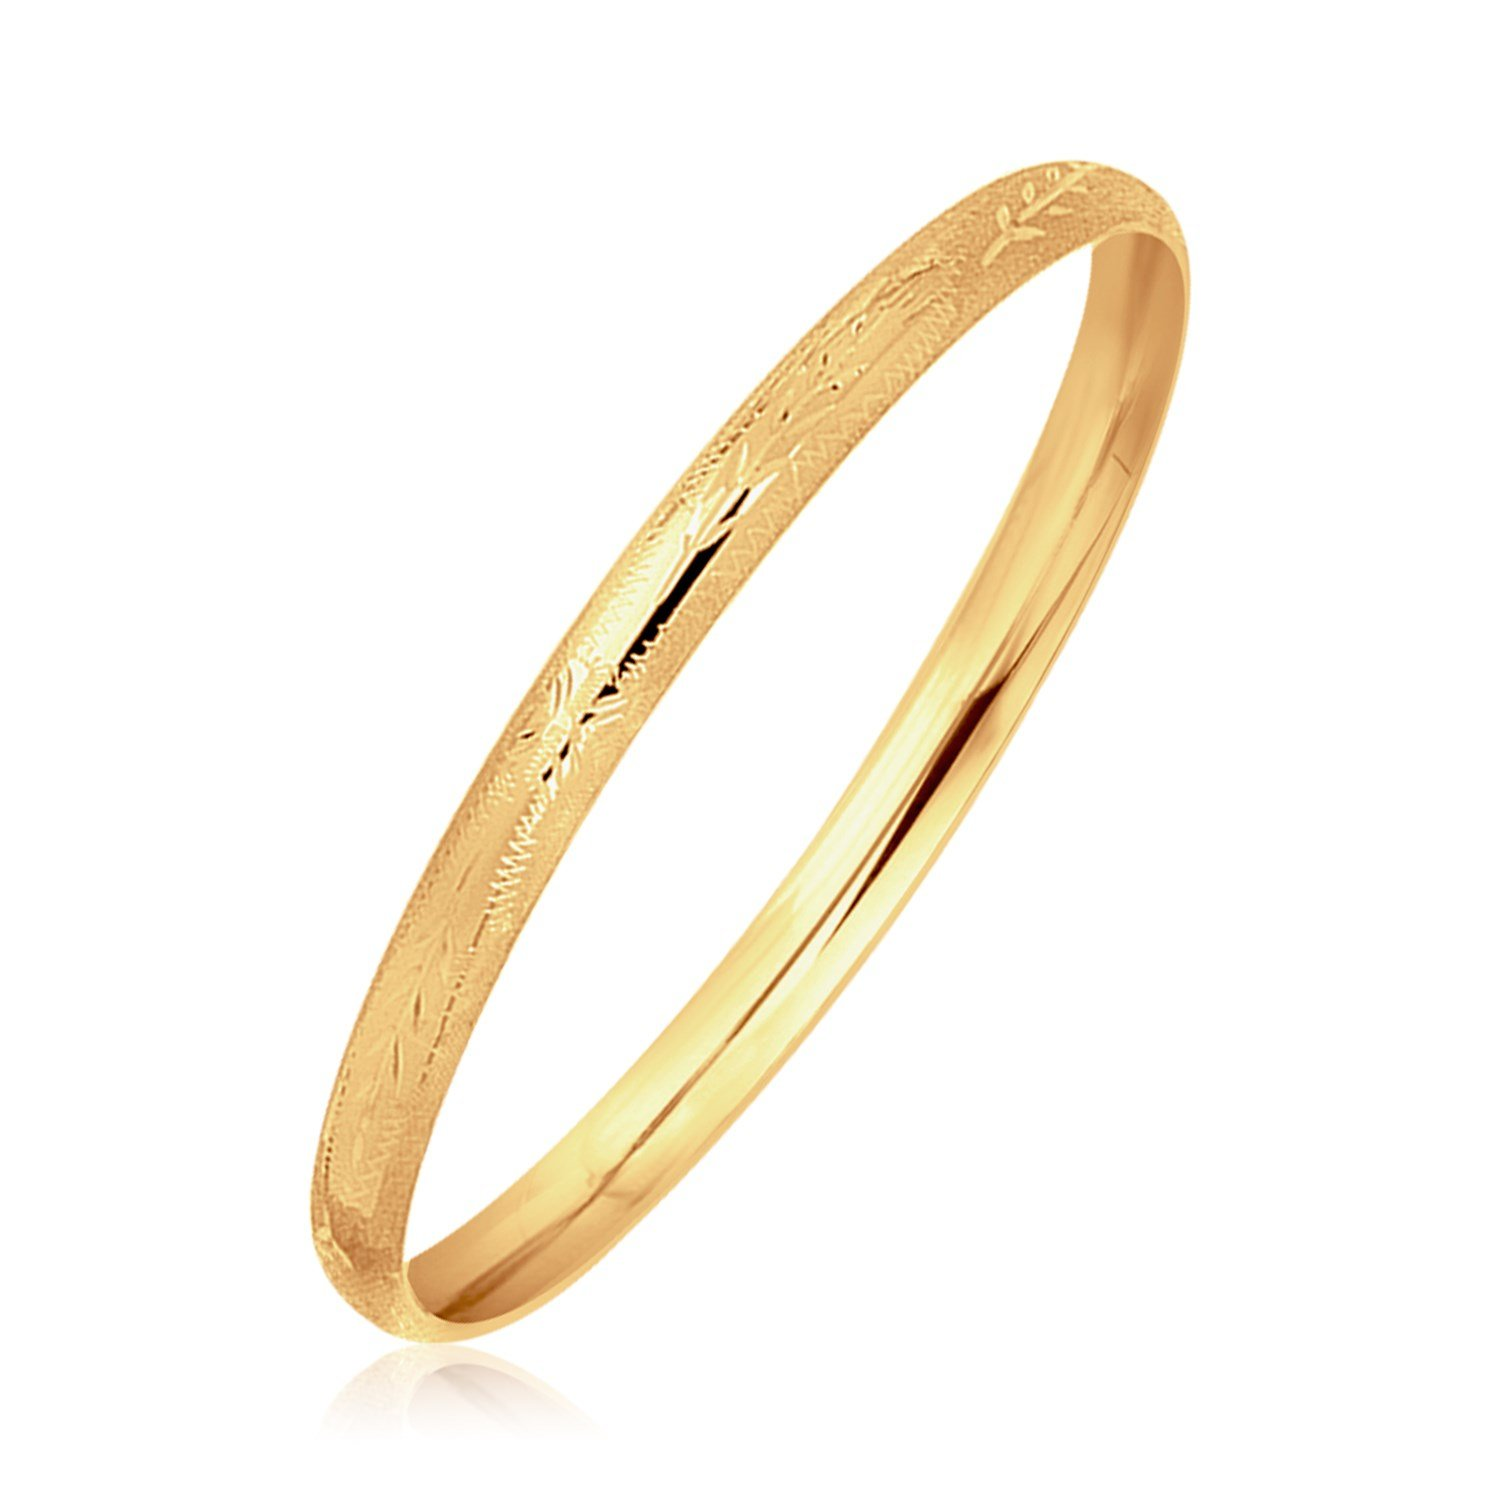 Bunnyberry 14K Yellow Gold Dome Style Childrens Bangle with Diamond Cuts